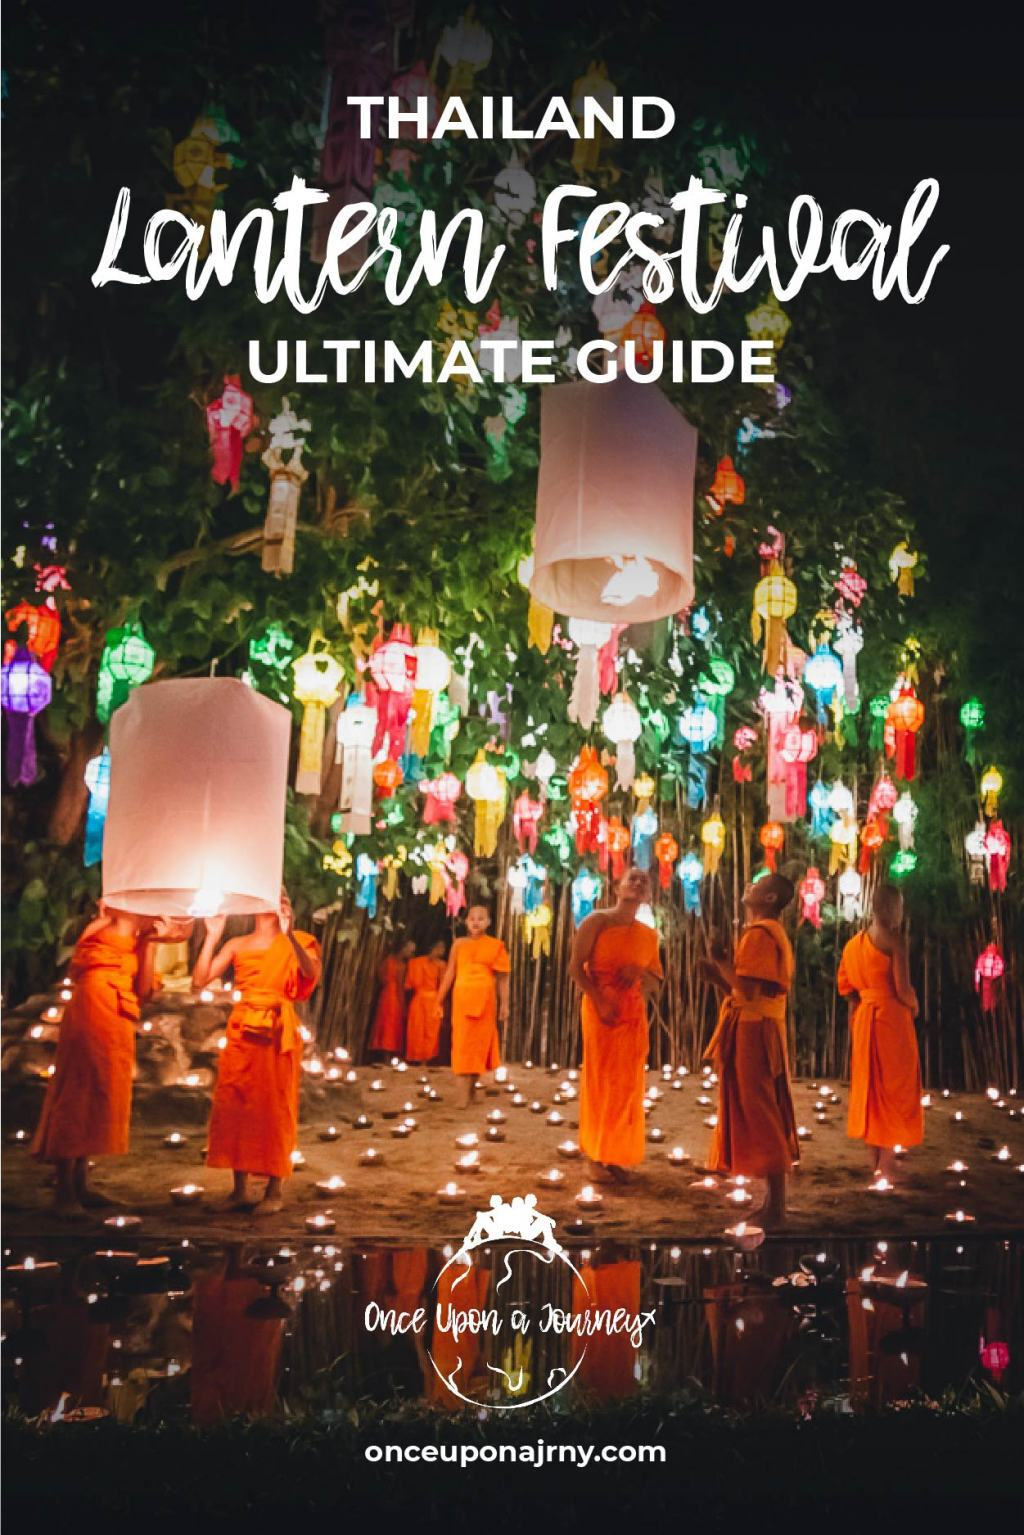 Thailand Lantern Festival Ultimate Guide